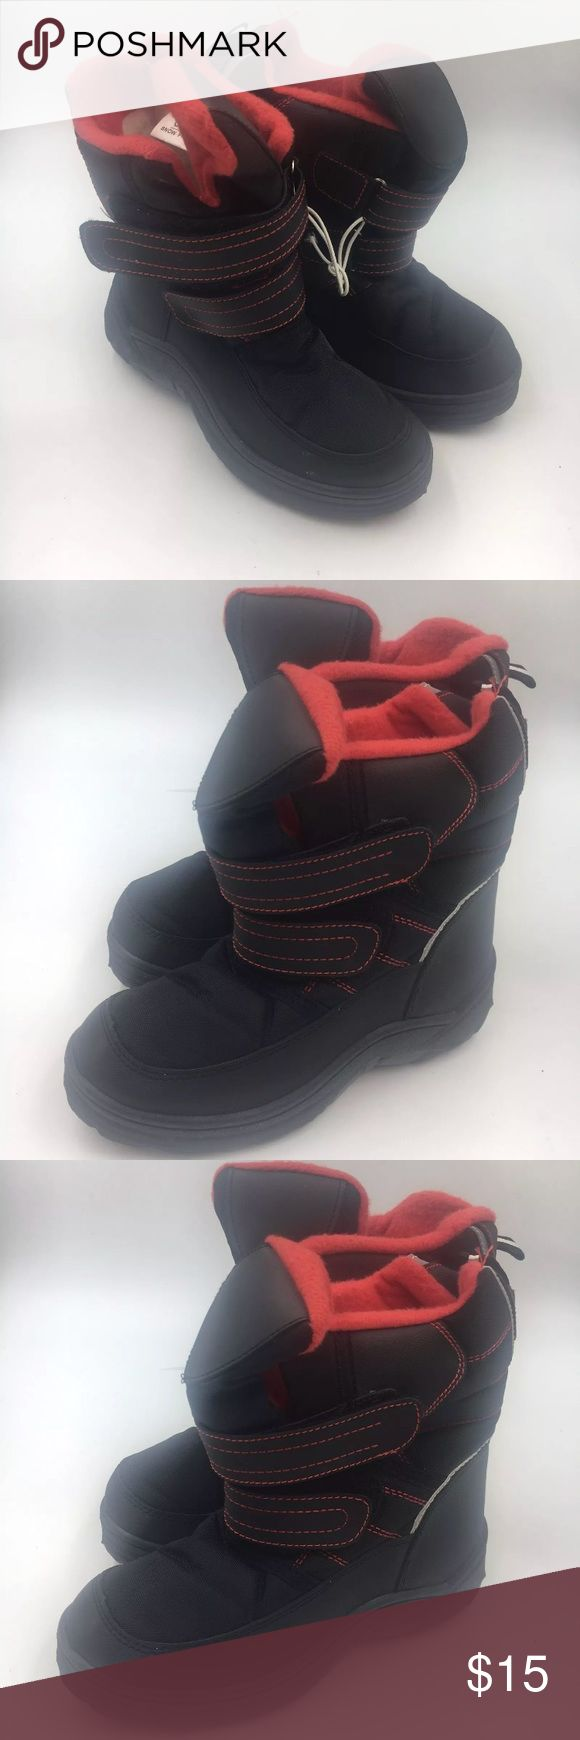 C*J kids snow boots Kids snow boots with hook and loop fasteners C*J Shoes Rain & Snow Boots